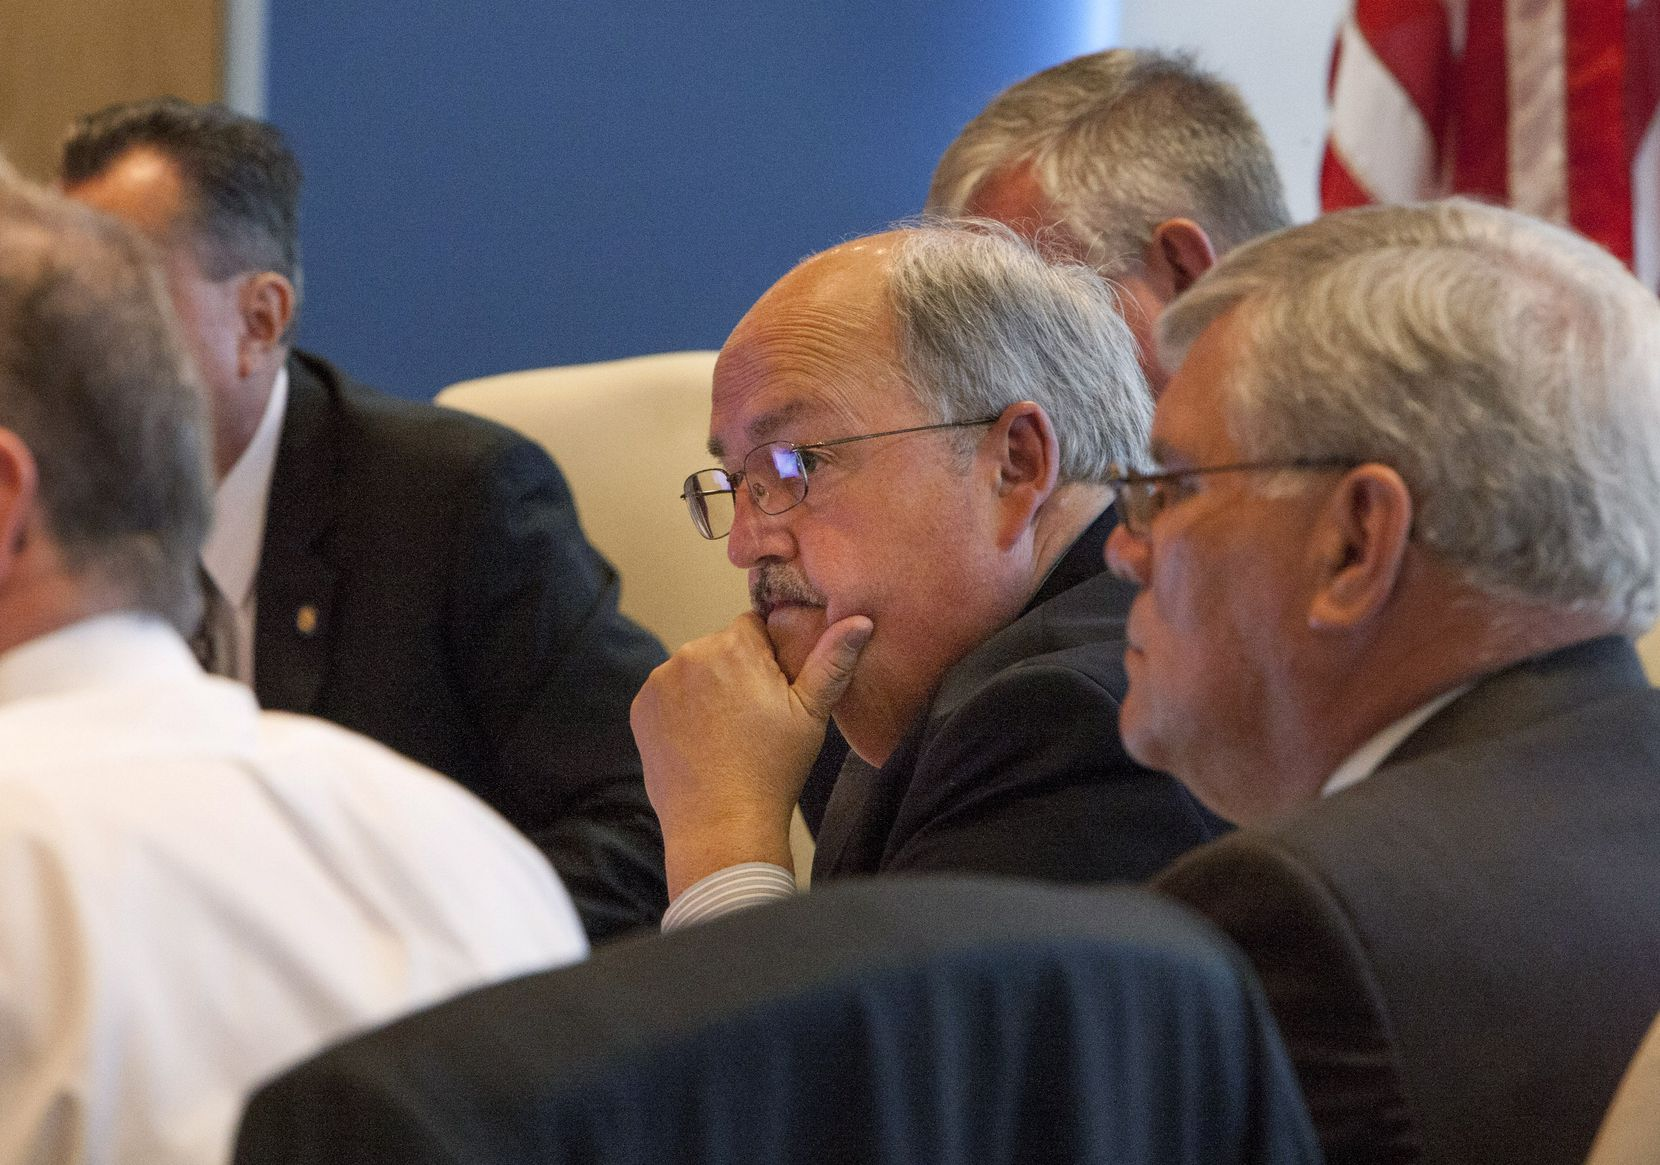 Richard Tettamant, the pension's former stop staffer, at a meeting of the board in 2013.